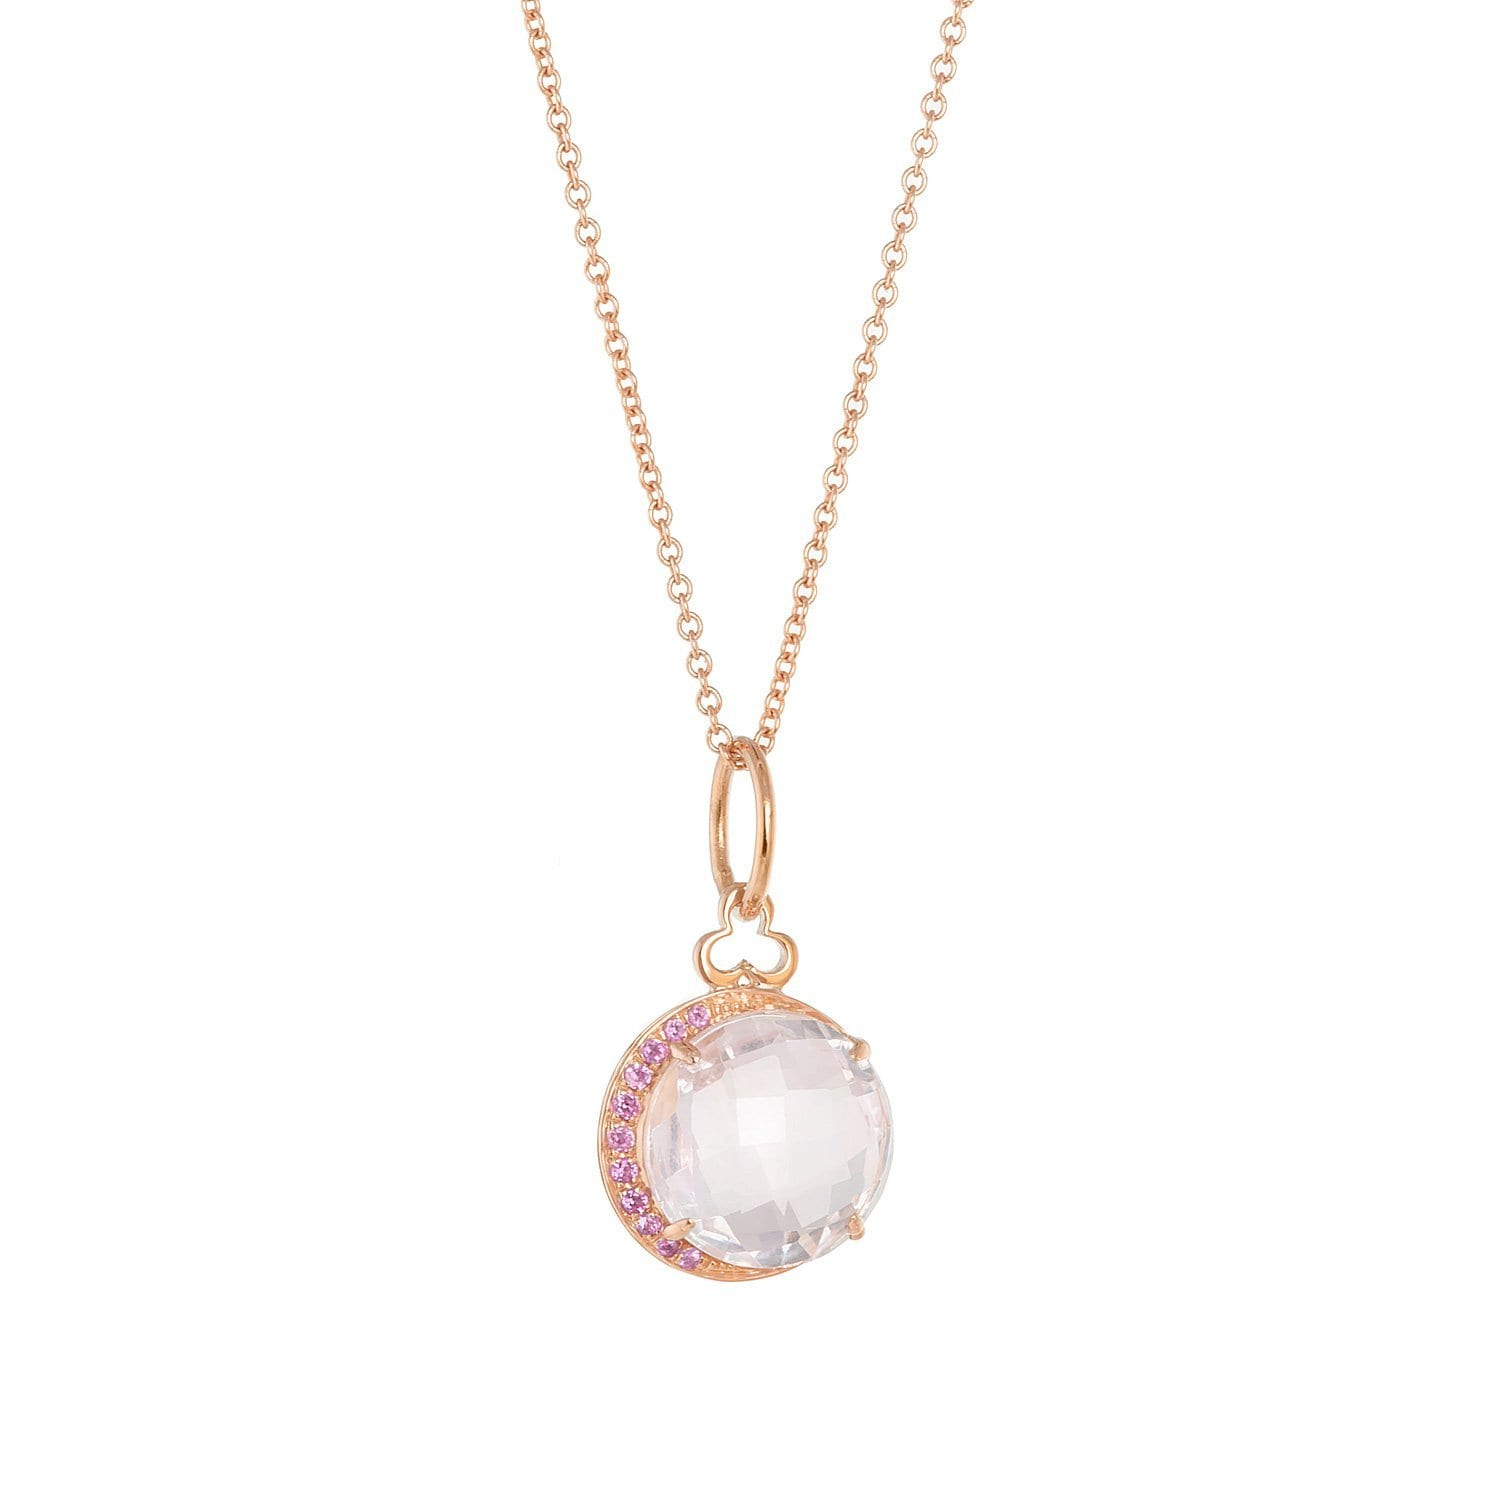 Devon Woodhill | Moon Charm Necklace | Rosr Quartz & Pink Sapphire Necklace